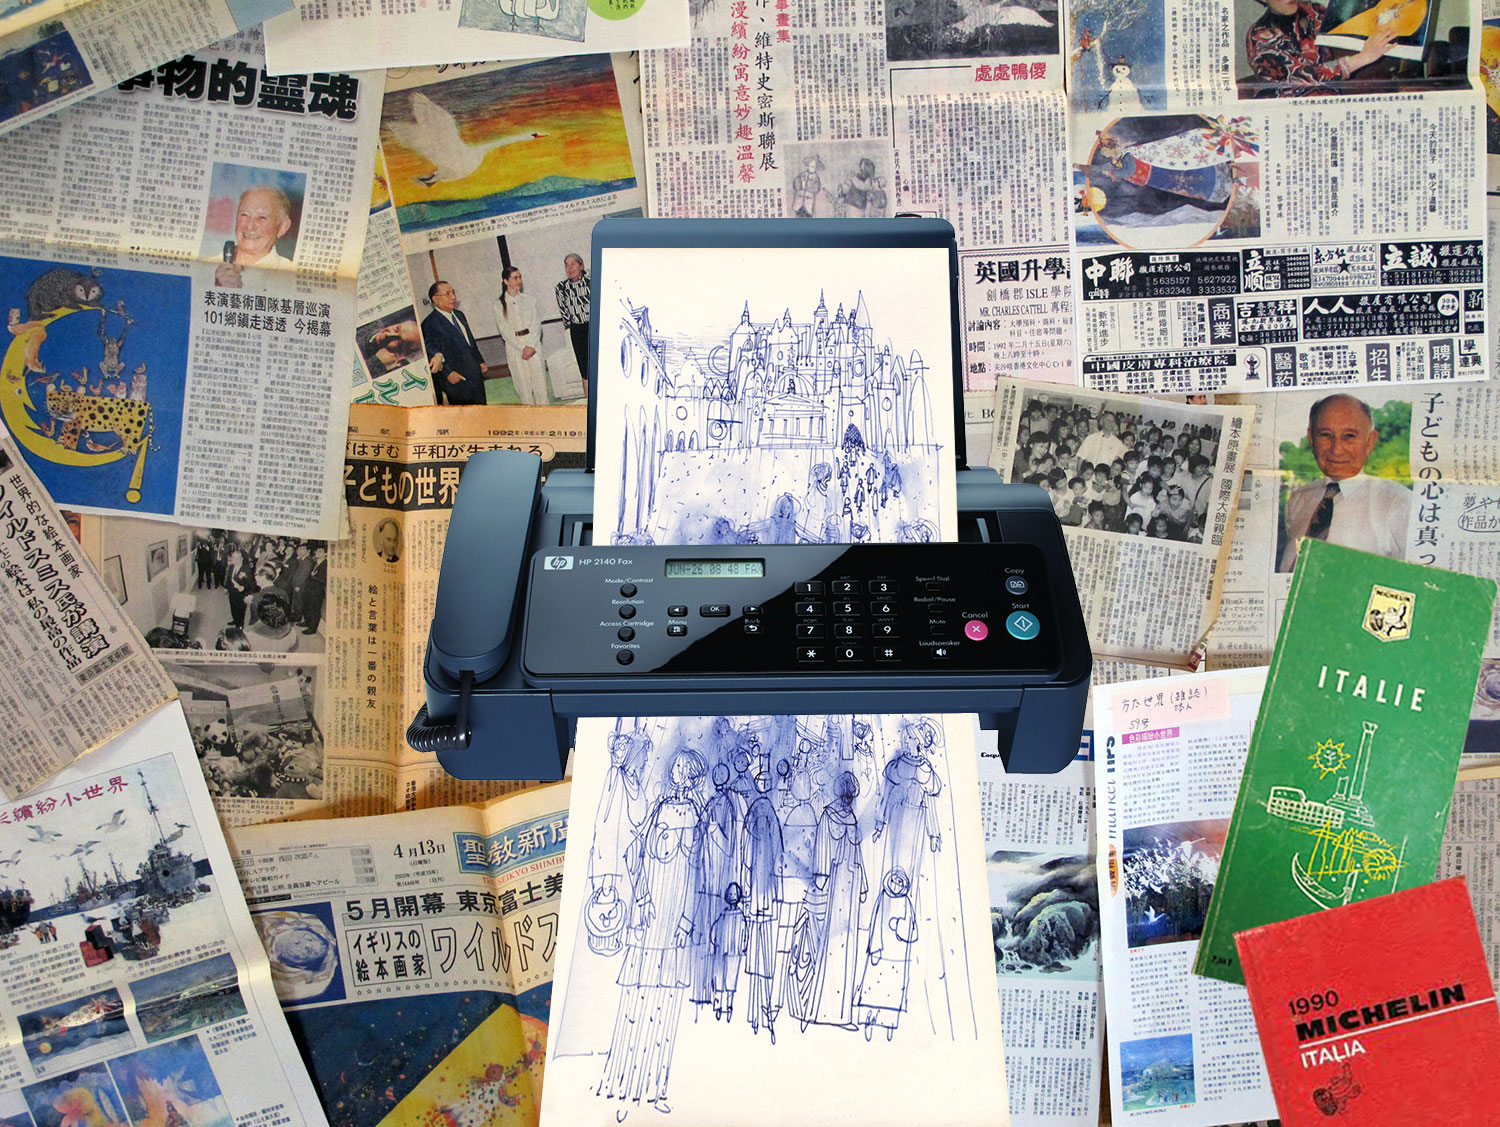 brian-wildsmith-the-nineties-japan-italy-and-the-fax-machine.jpg